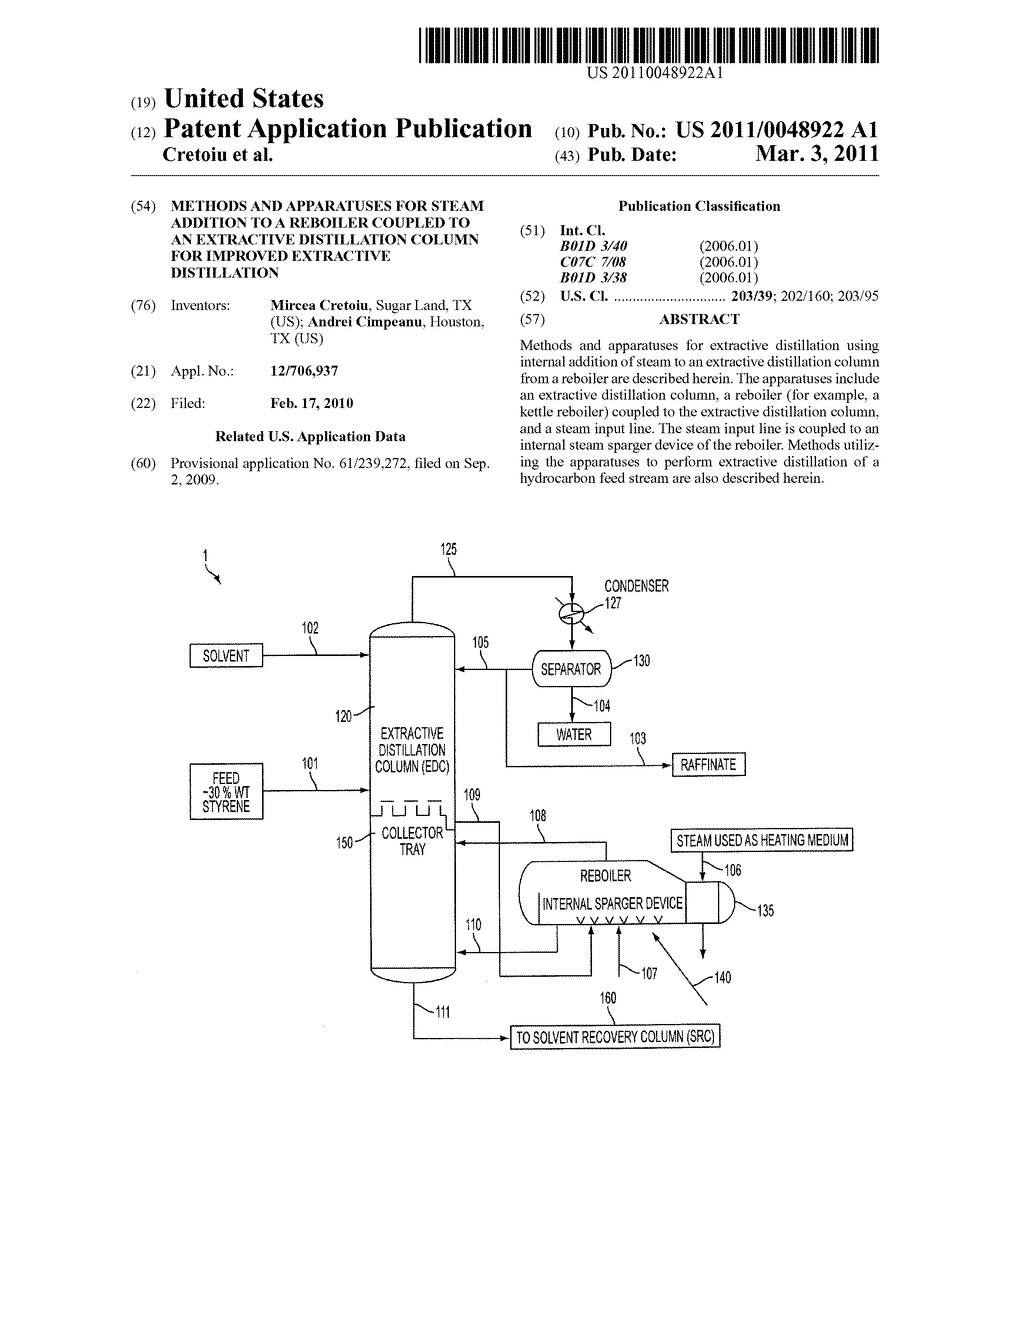 METHODS AND APPARATUSES FOR STEAM ADDITION TO A REBOILER COUPLED TO AN EXTRACTIVE DISTILLATION COLUMN FOR IMPROVED EXTRACTIVE DISTILLATION - diagram, schematic, and image 01